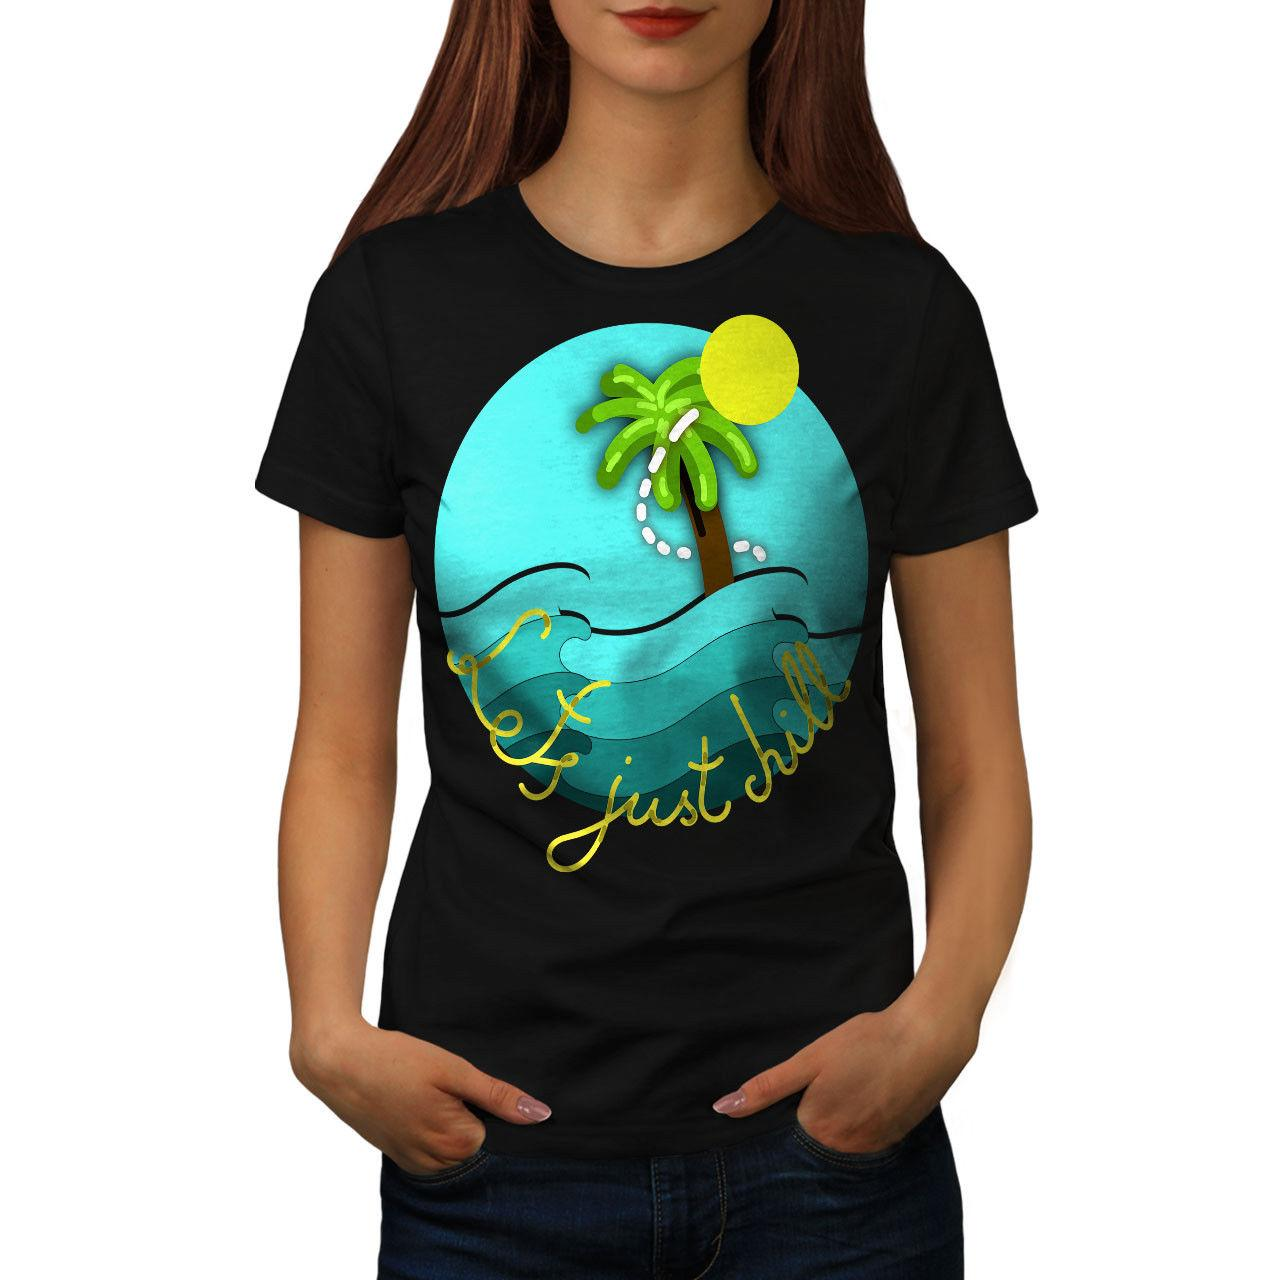 51b6c0f0c543 Chill Palm Travel Holiday Women T Shirt NEW | Wellcoda T Shirts Buy Online  Humor Tees From Besttshirts201805, $10.66| DHgate.Com